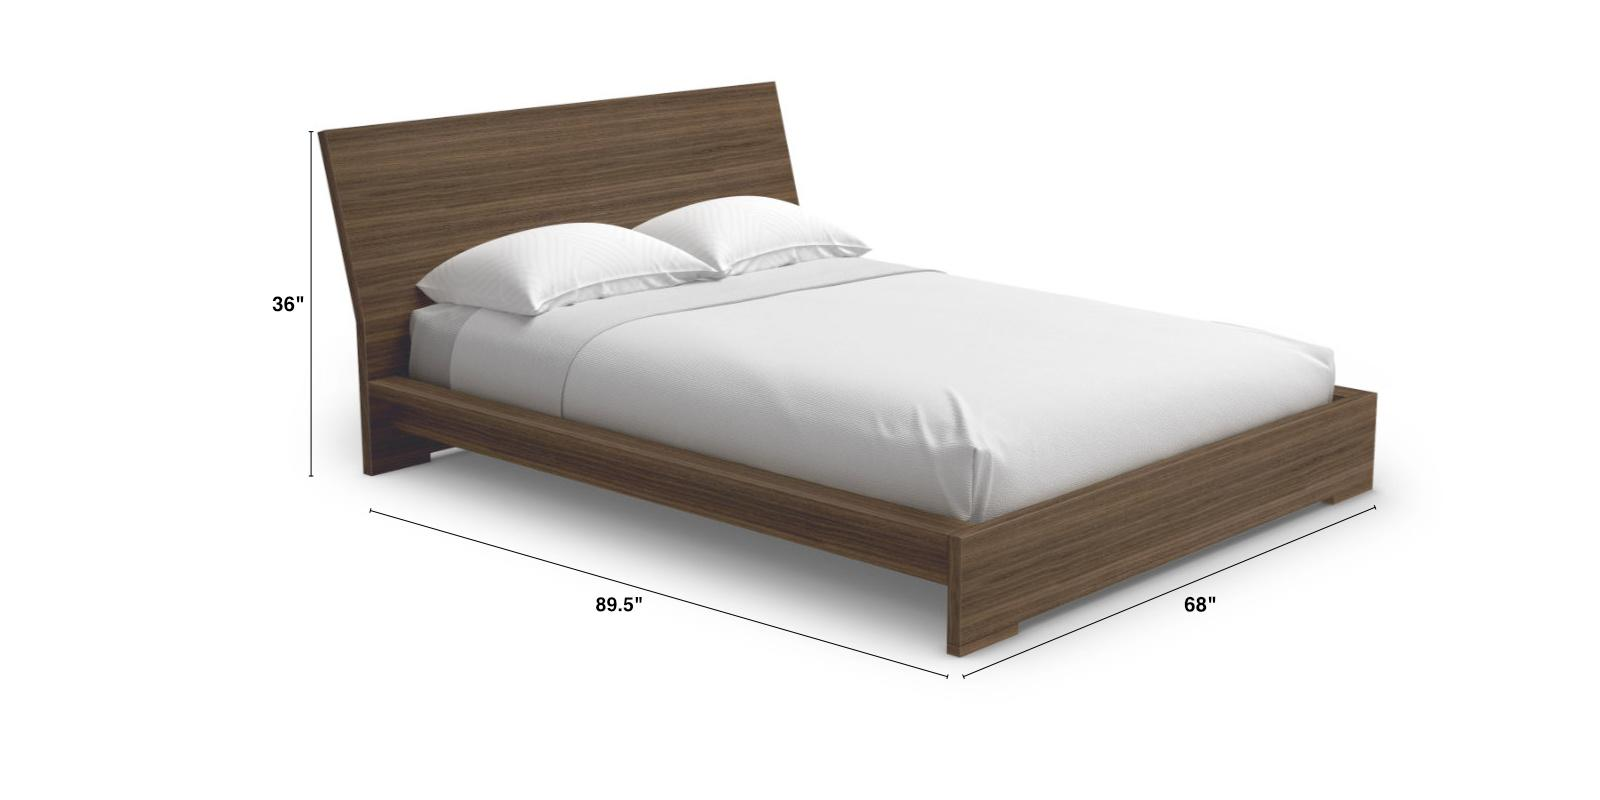 Sonoma Queen Bed Dimensions